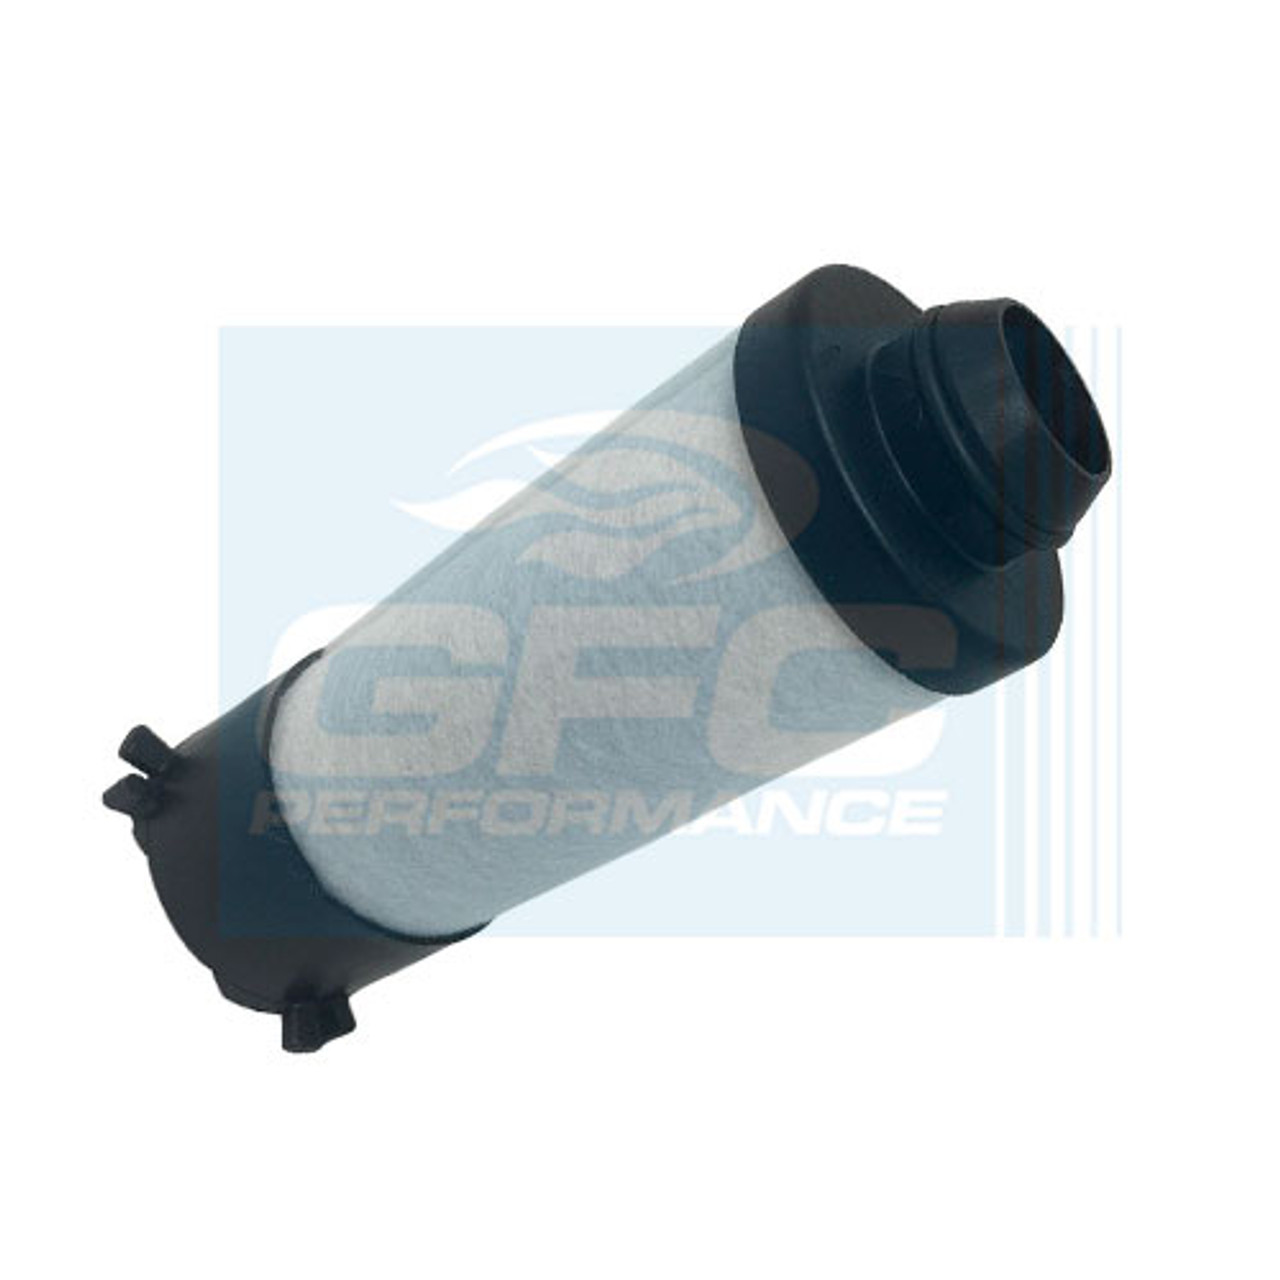 SF9566 GFC Saturn Compressed Air Filter Replacement Element Sullair FX45 Series